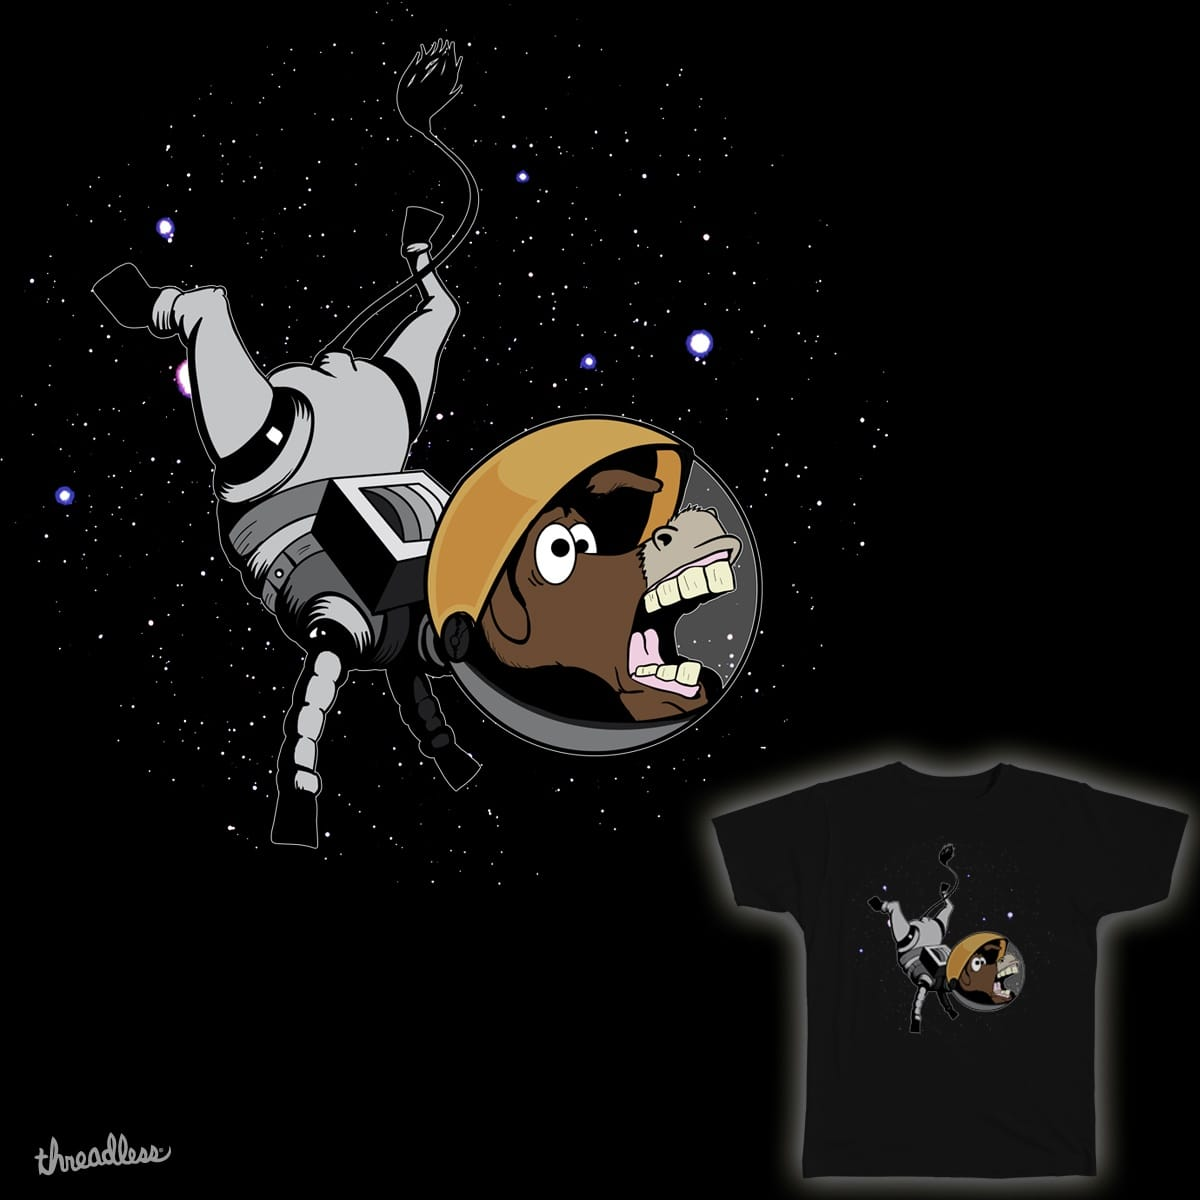 What Do You Call A Donkey in Space? by theimpactpixel on Threadless